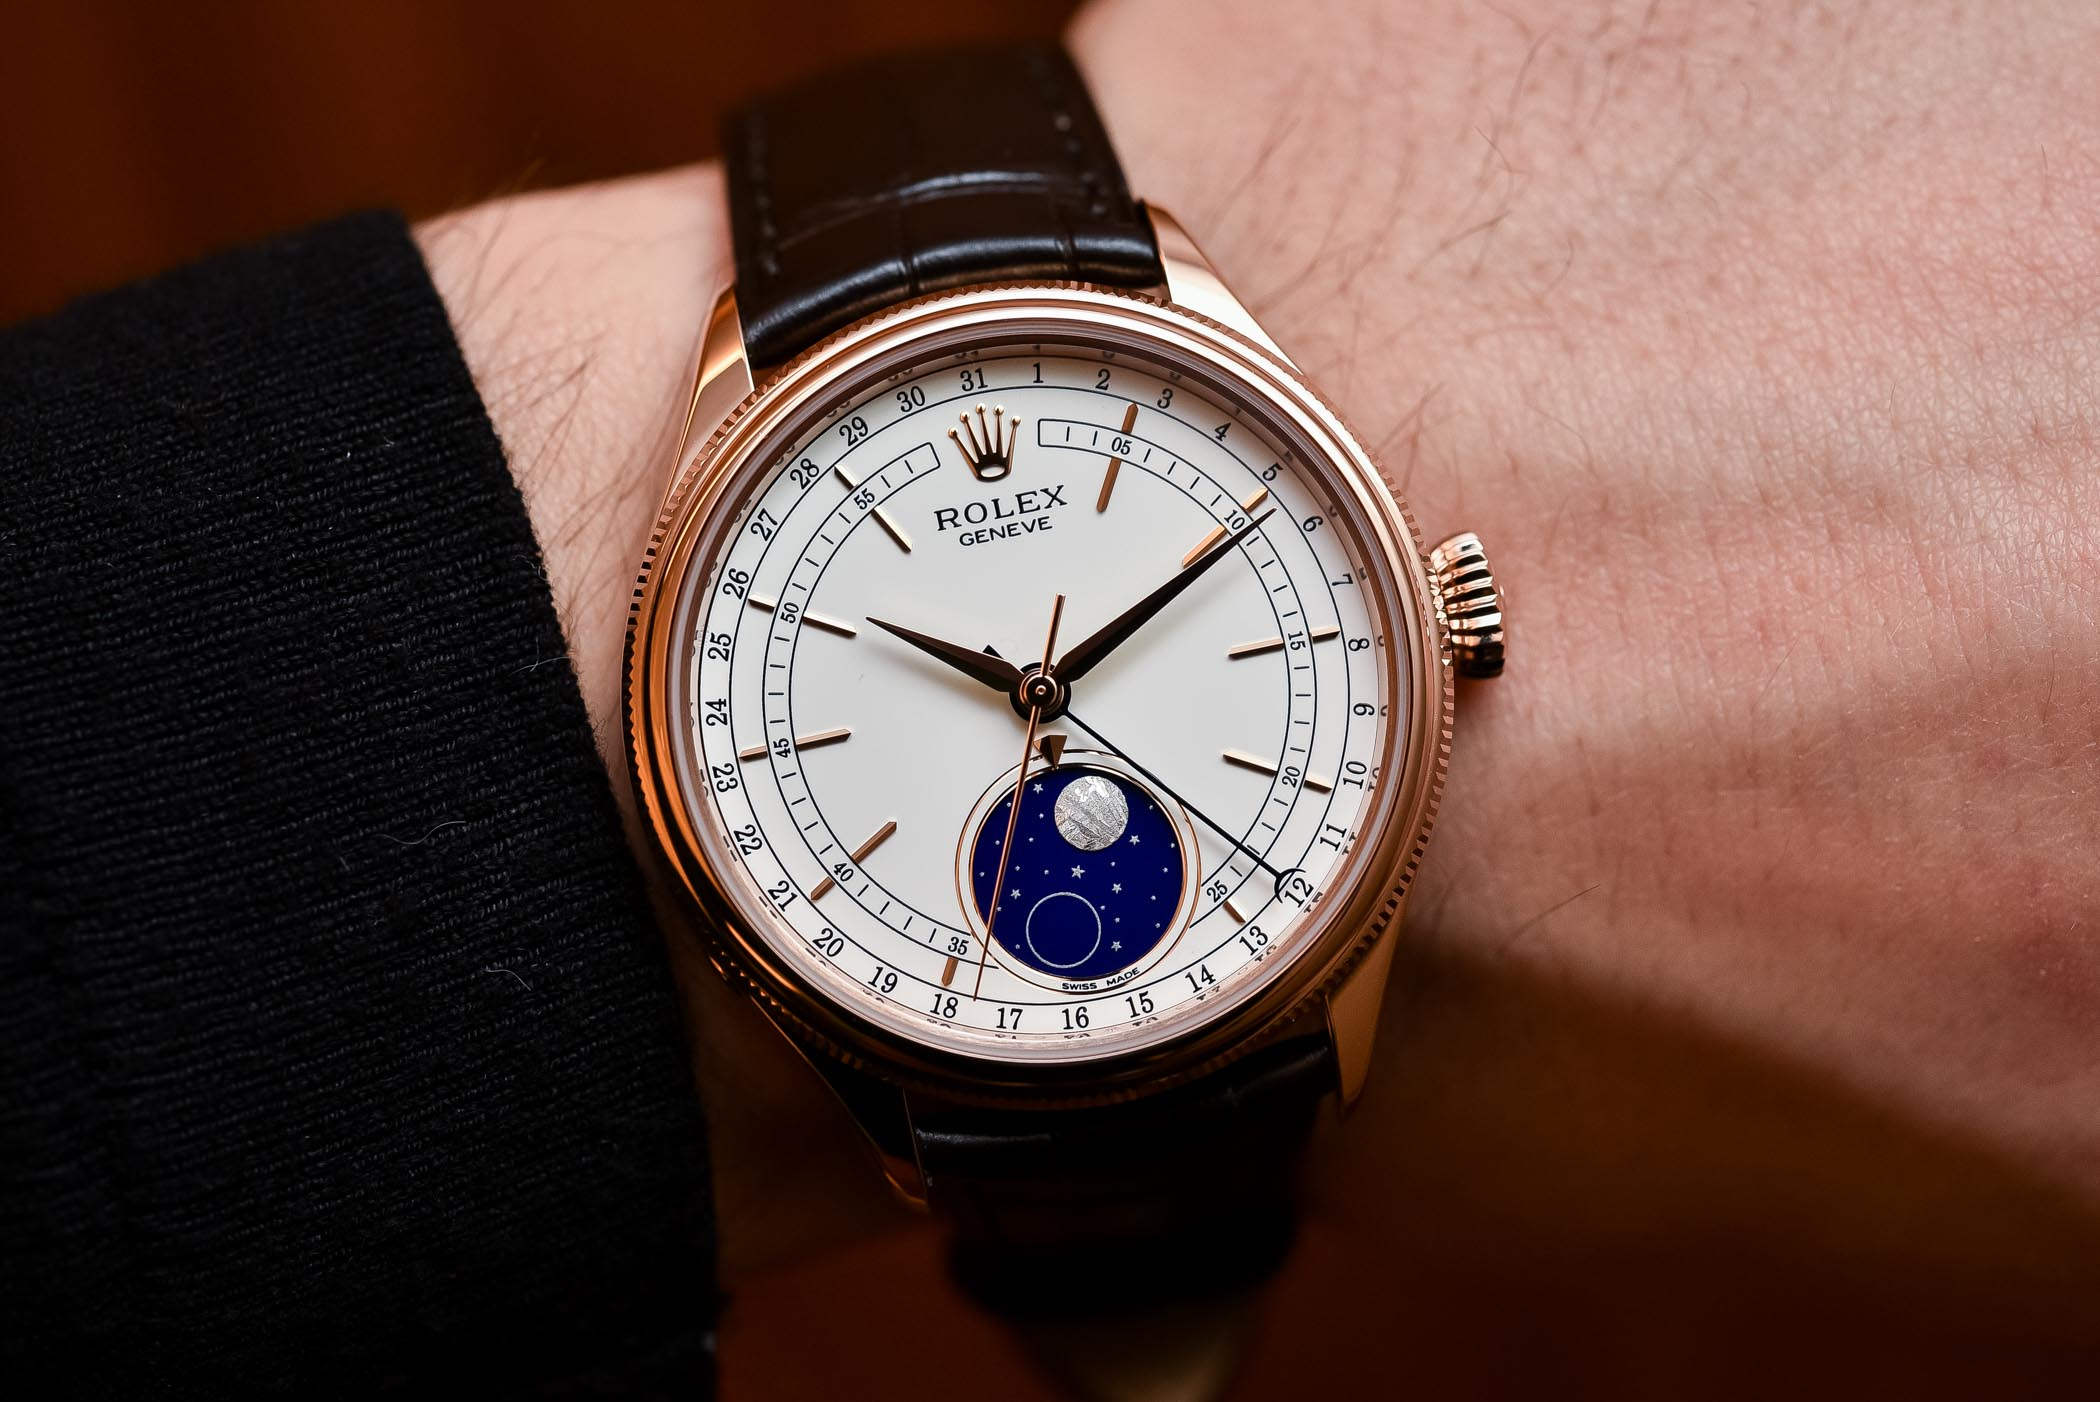 Rolex Cellini Moonphase Ref. 50535 , Baselworld 2017 Review